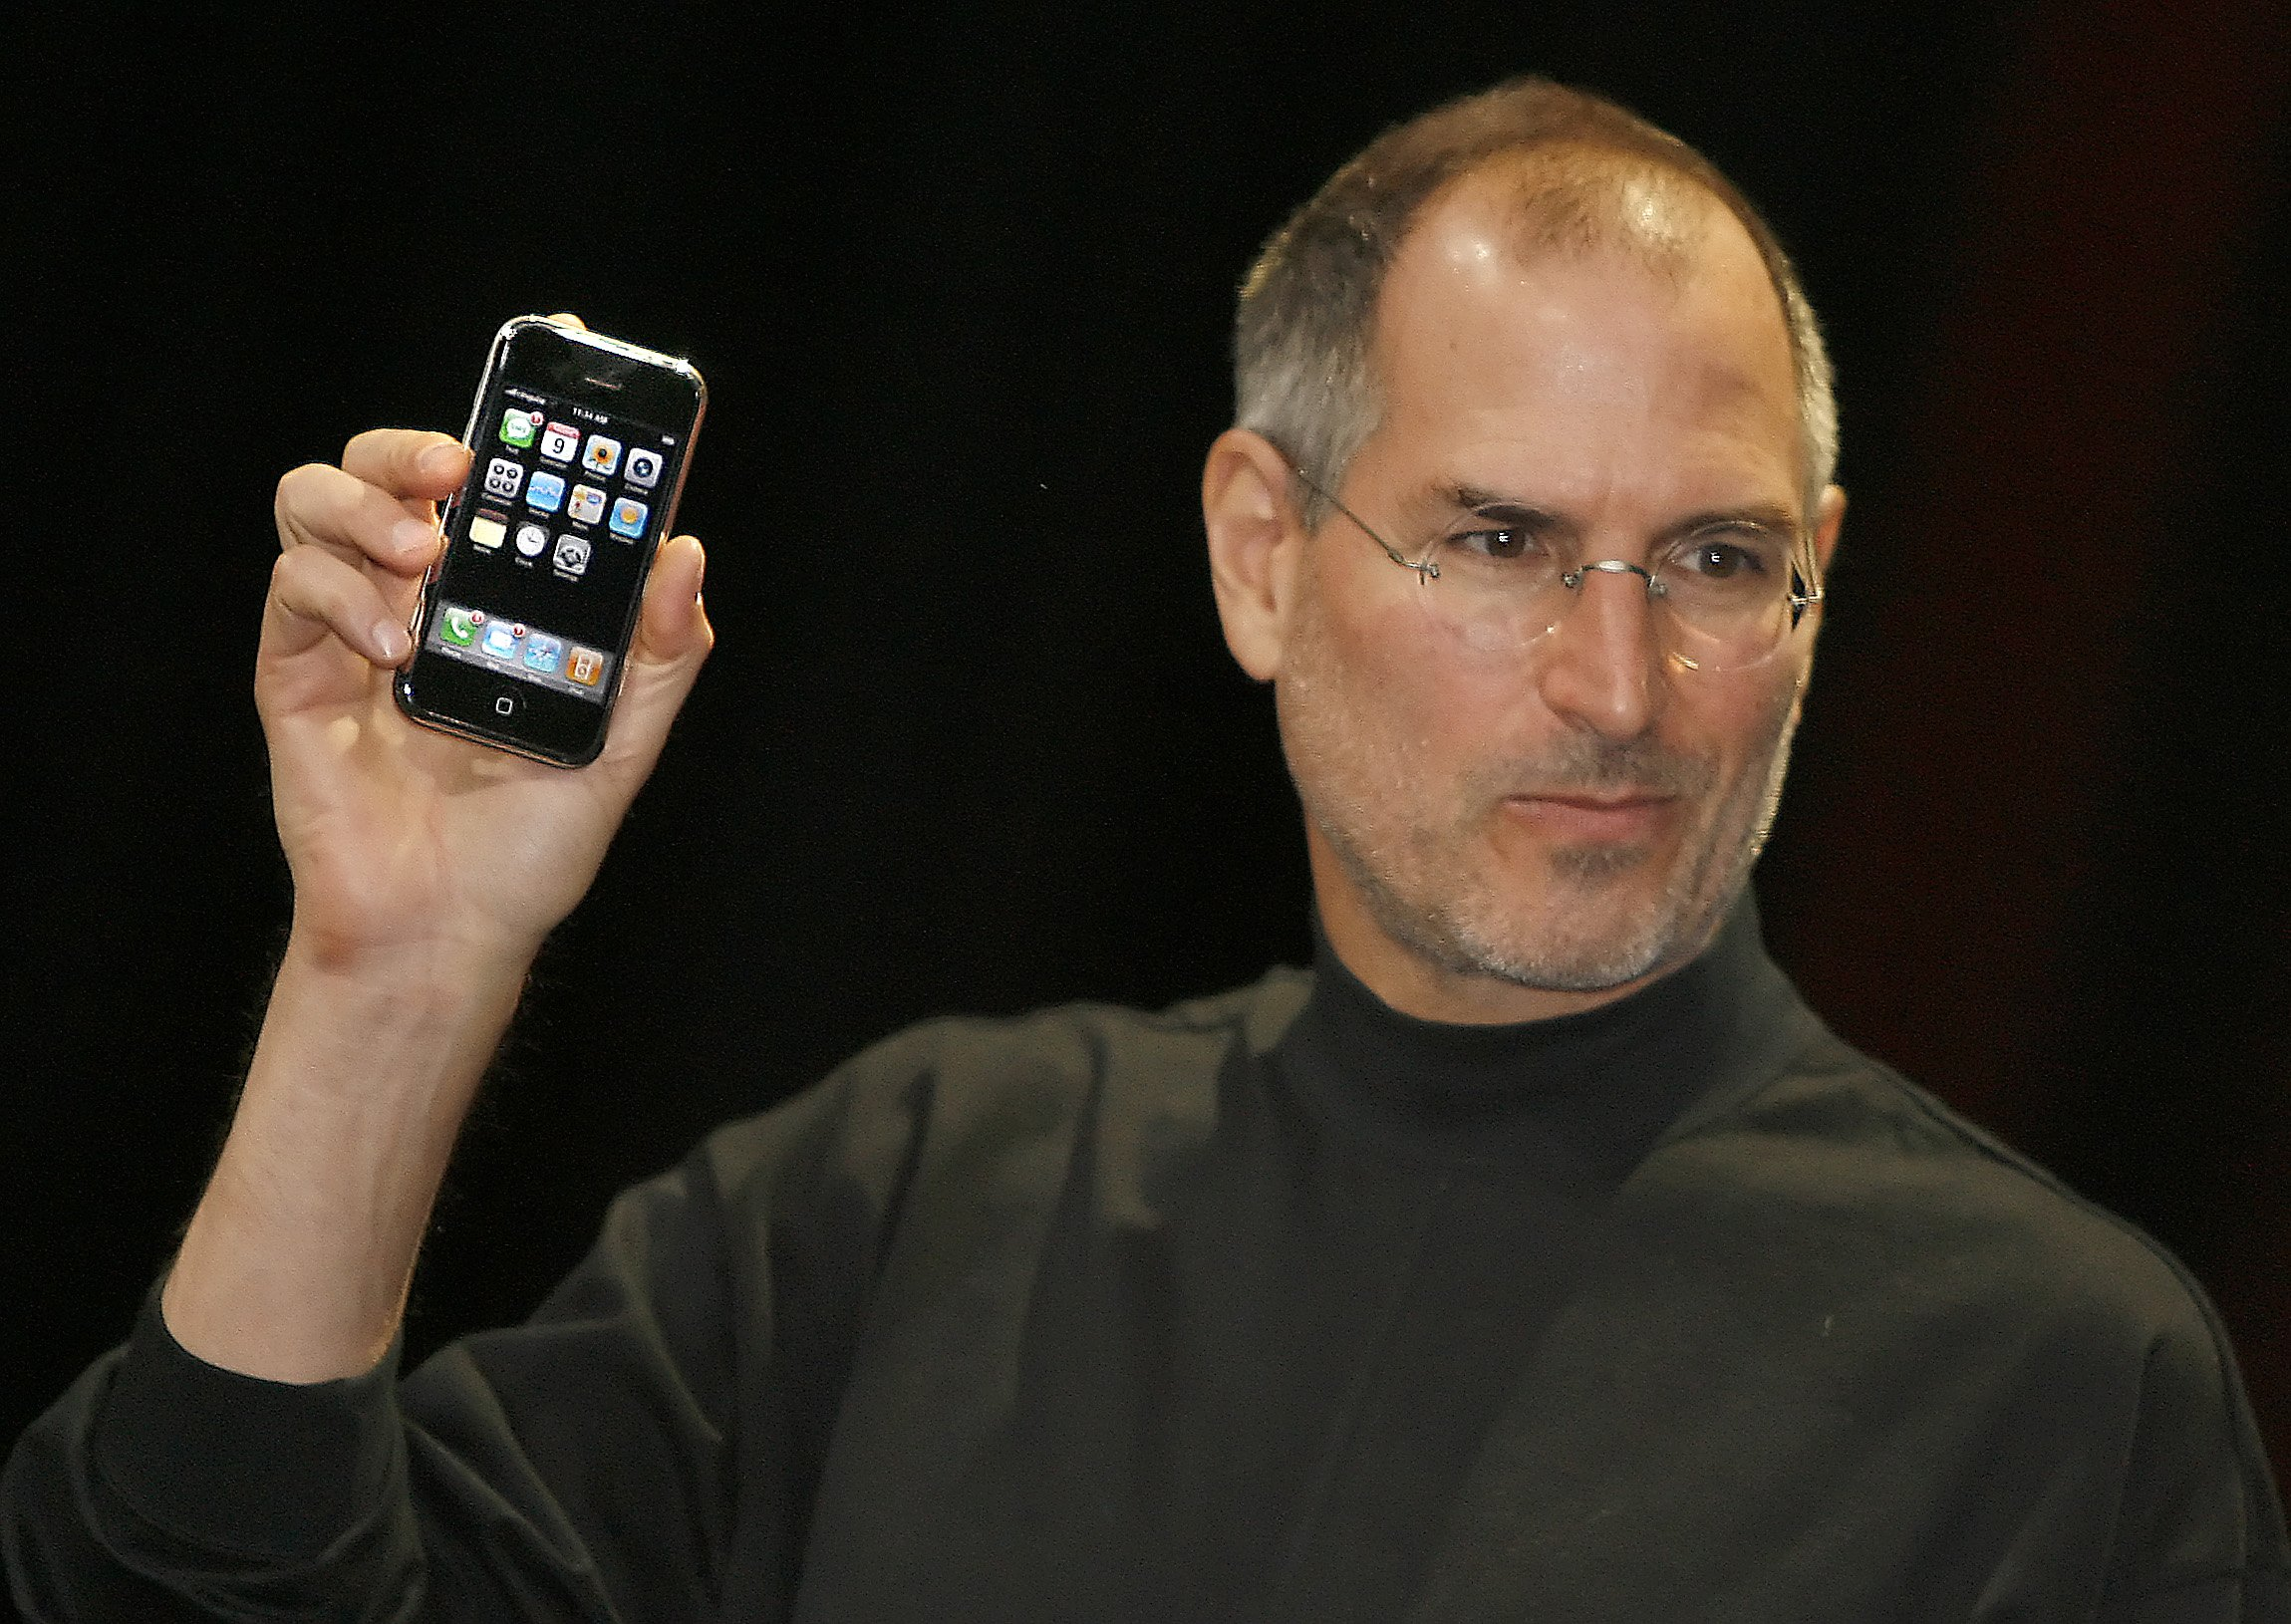 (FILES) This file photo taken on January 9, 2007 at the Macworld Conference in San Francisco, California shows Apple chief executive Steve Jobs unveiling the iPhone, an ultra-slim new mobile phone - less than half-an-inch (1.3 centimeters) thick - boasting a phone, Internet capability and an MP3 player as well as featuring a two megapixel digital camera, Jobs said. Apple celebrates on January 9, 2016 the 10th anniversary of the unveiling of the Iphone, the smartphone that revolutionised the technological world. / AFP PHOTO / TONY AVELARTONY AVELAR/AFP/Getty Images